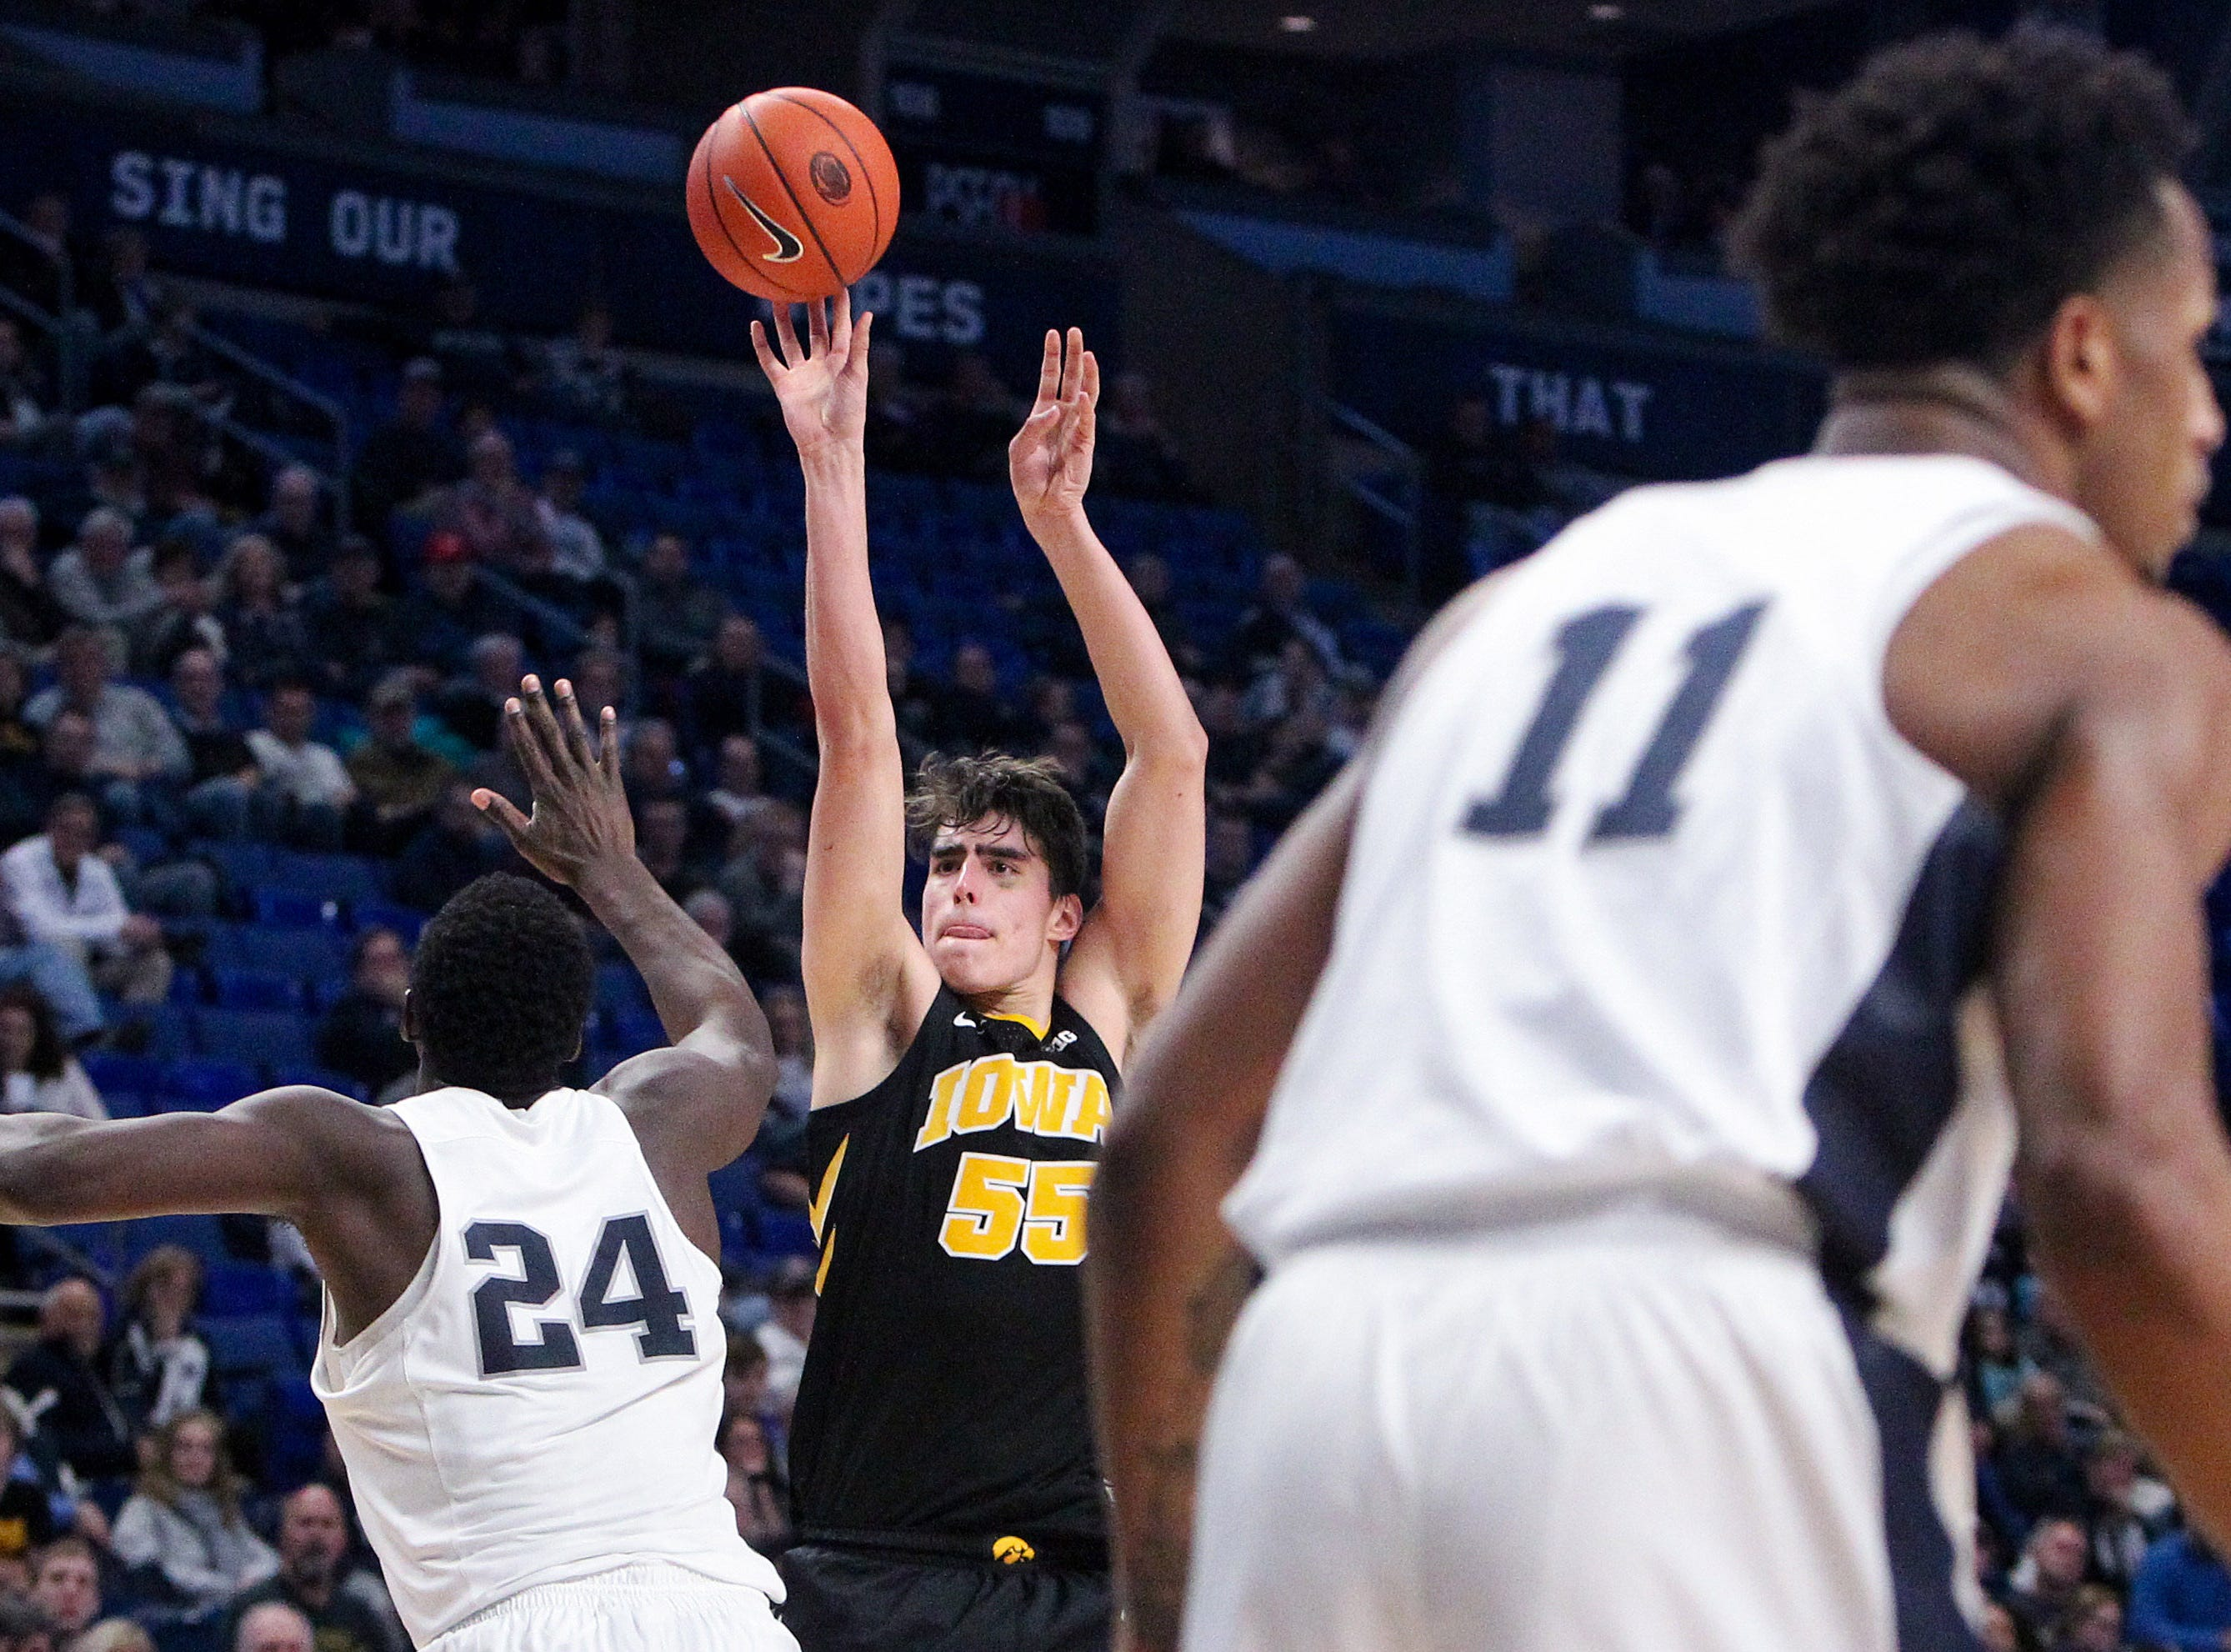 Jan 16, 2019; University Park, PA, USA; Iowa Hawkeyes forward Luka Garza (55) shoots the ball as Penn State Nittany Lions forward Mike Watkins (24) defends during the second half at Bryce Jordan Center. Mandatory Credit: Matthew O'Haren-USA TODAY Sports